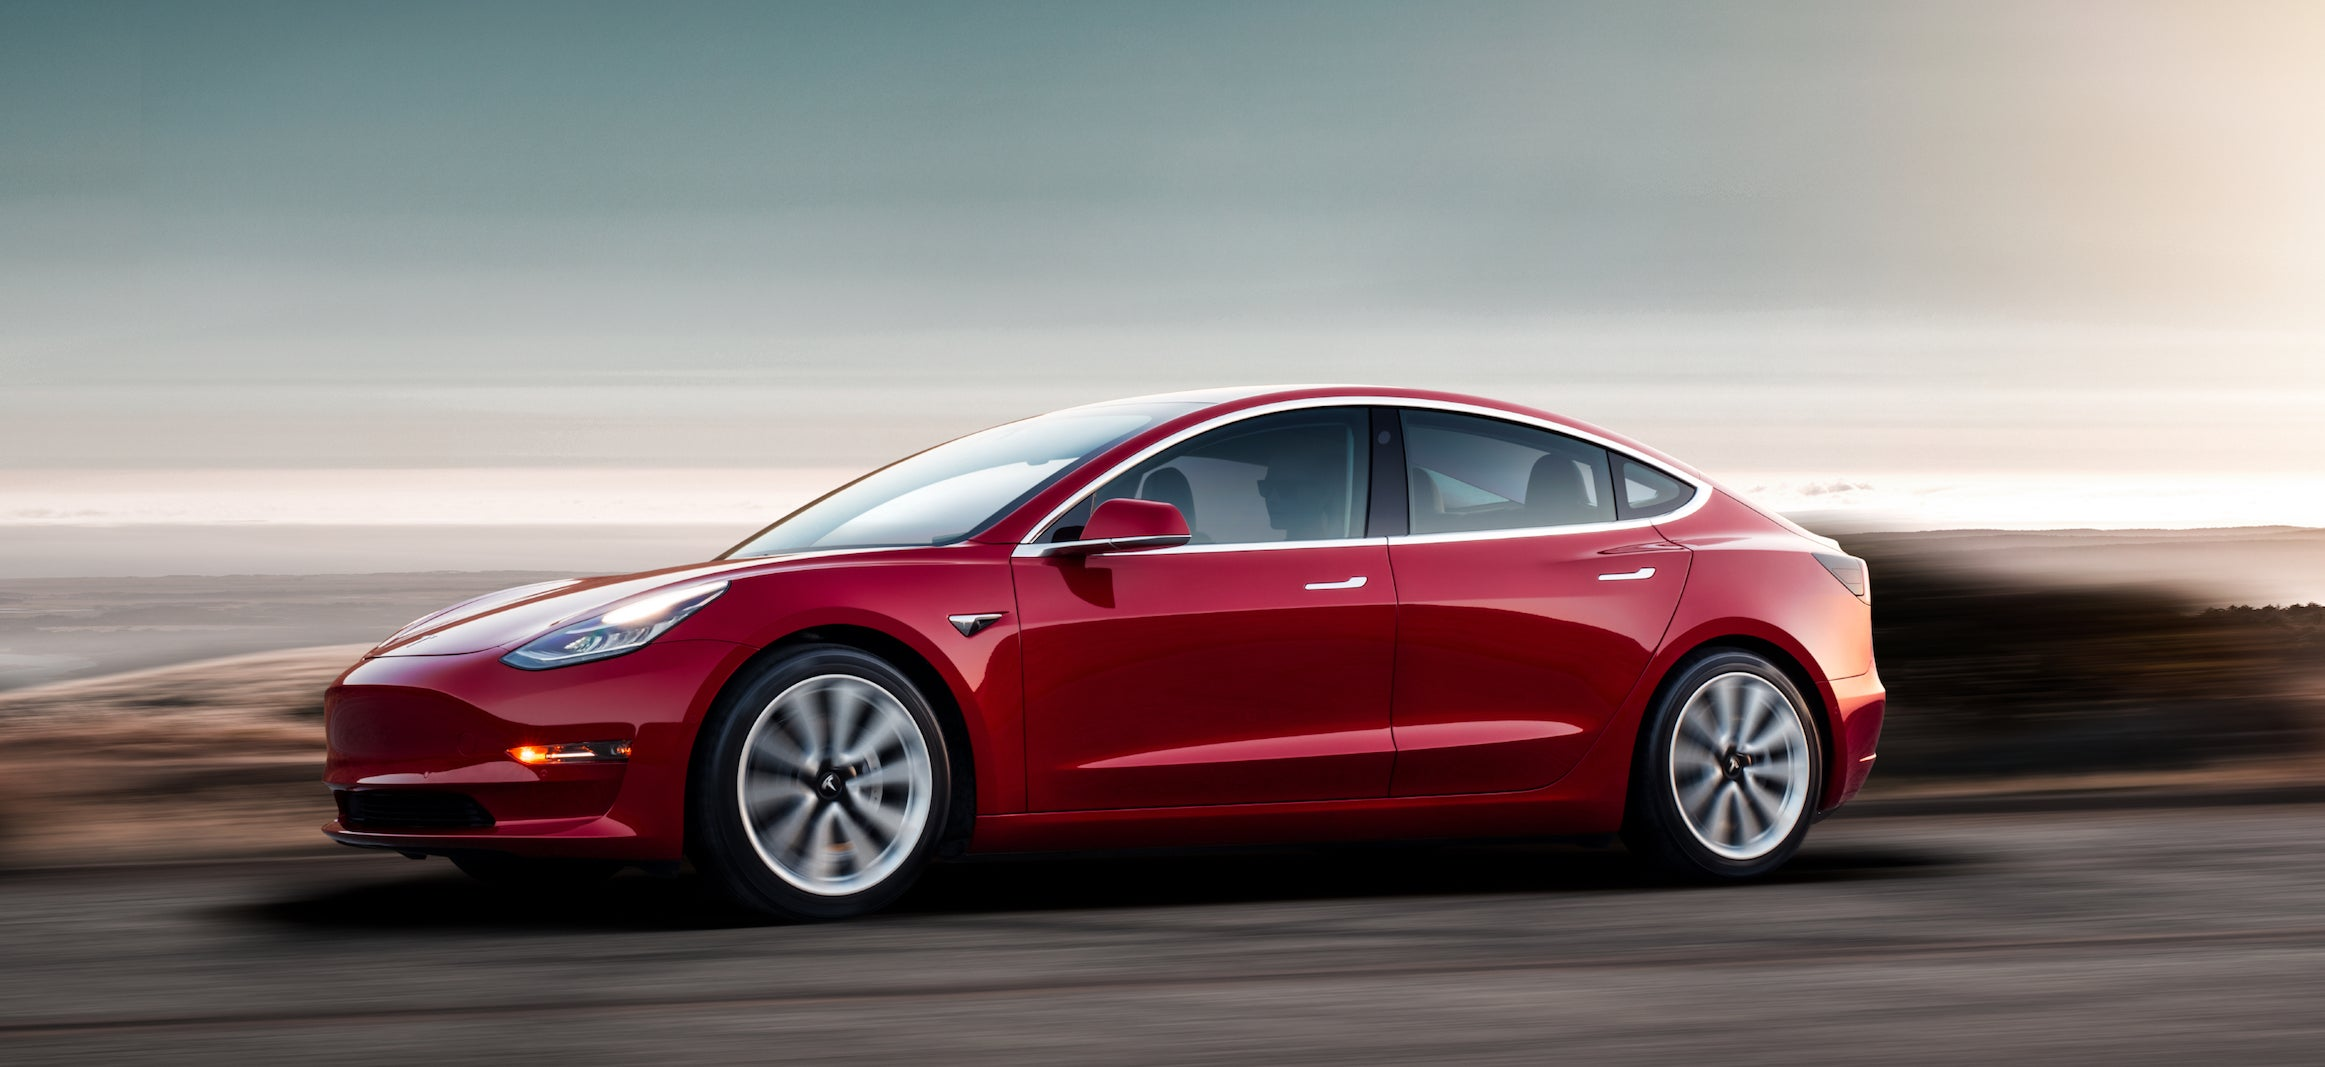 How Close Is Tesla To Running Out Of Cash